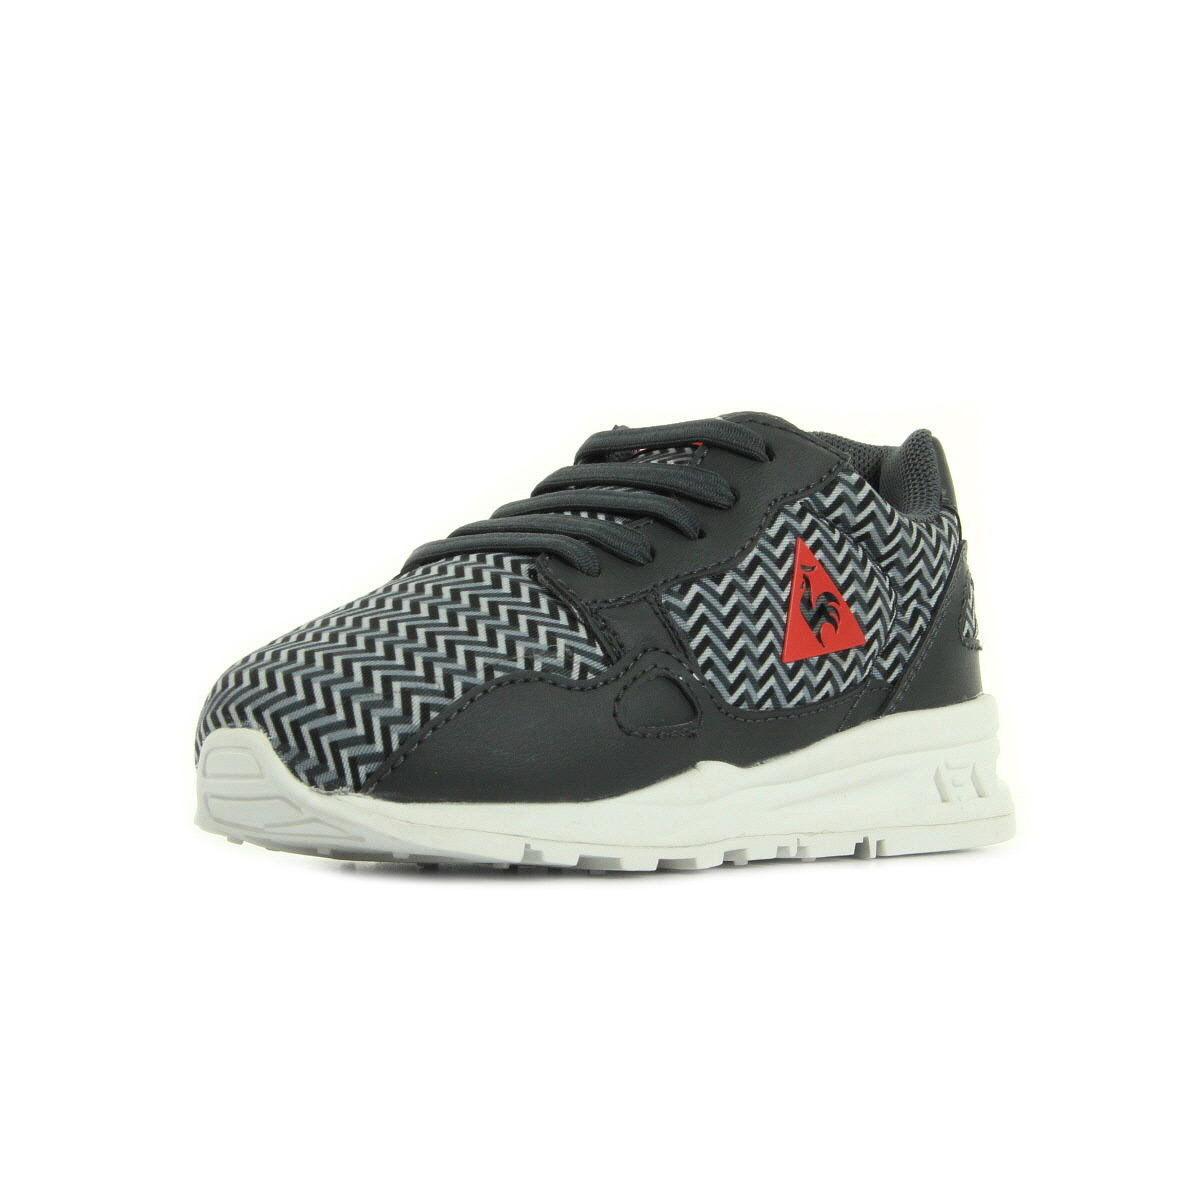 le coq sportif lcs r900 inf geo print 1620523 chaussures homme homme. Black Bedroom Furniture Sets. Home Design Ideas